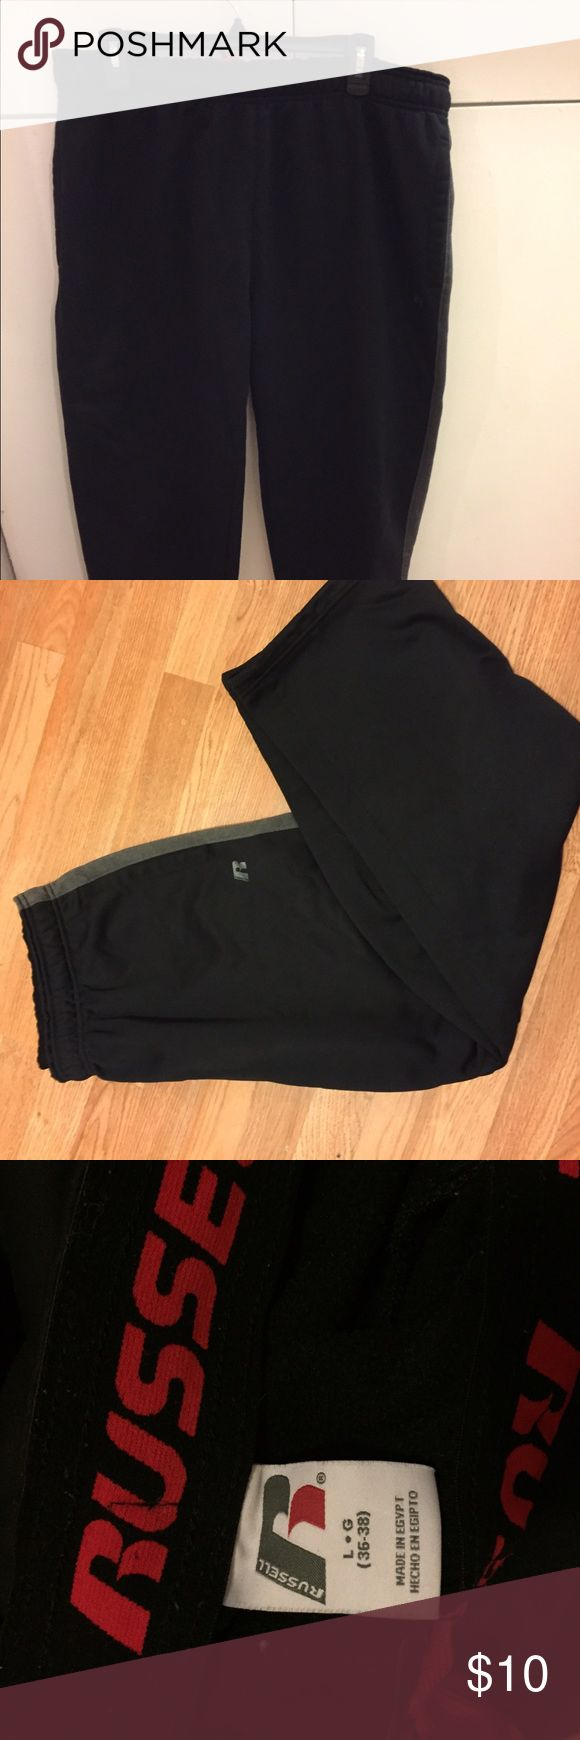 Russel workout pant Workout pants for men not skinny russell Pants Sweatpants & Joggers